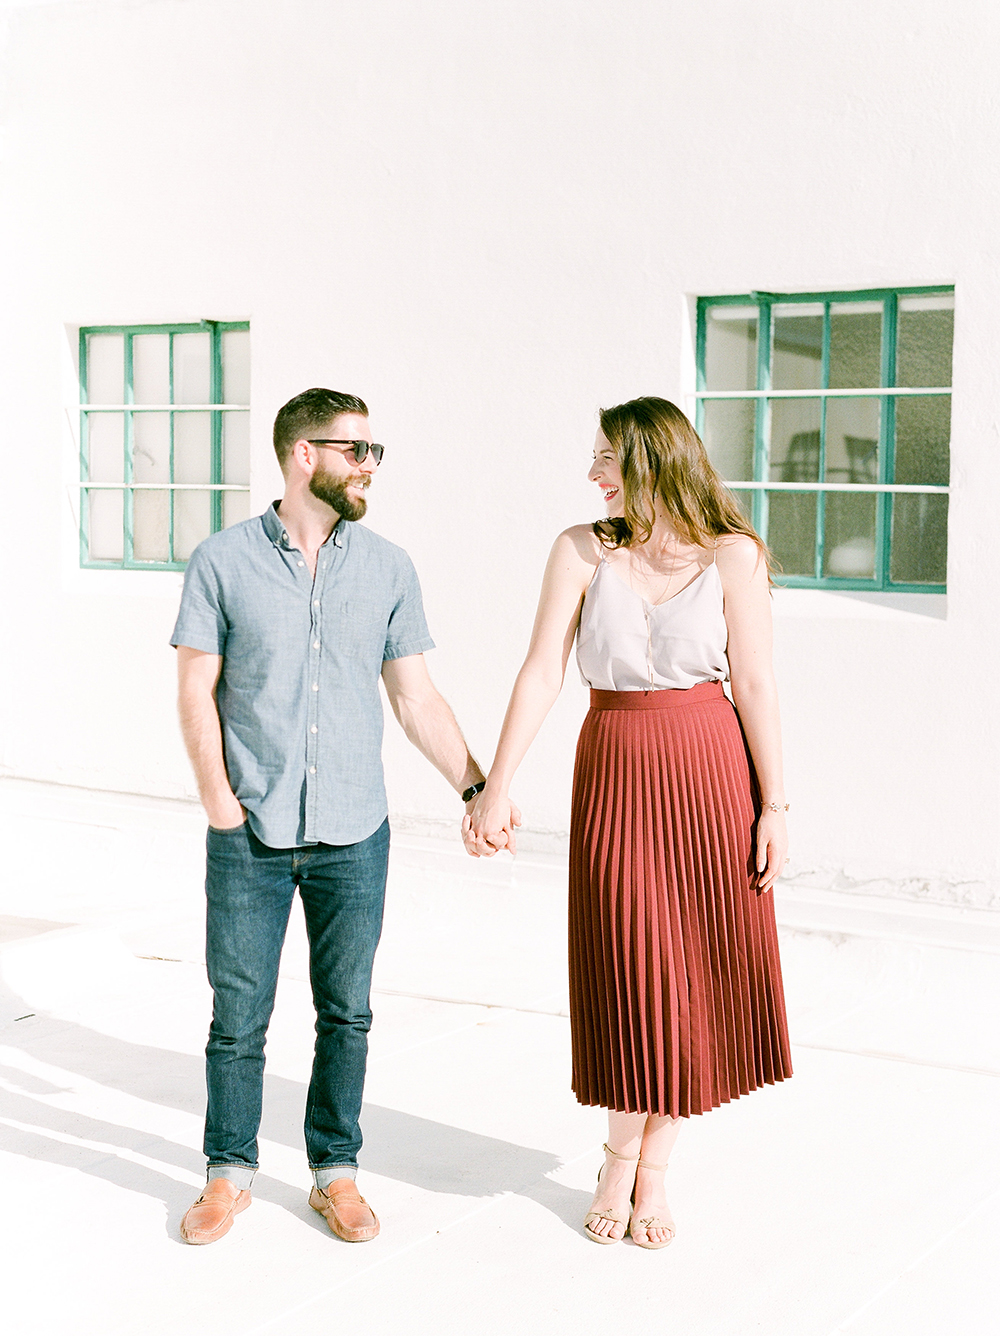 Top 5 Reasons to Have Engagement Photos Taken